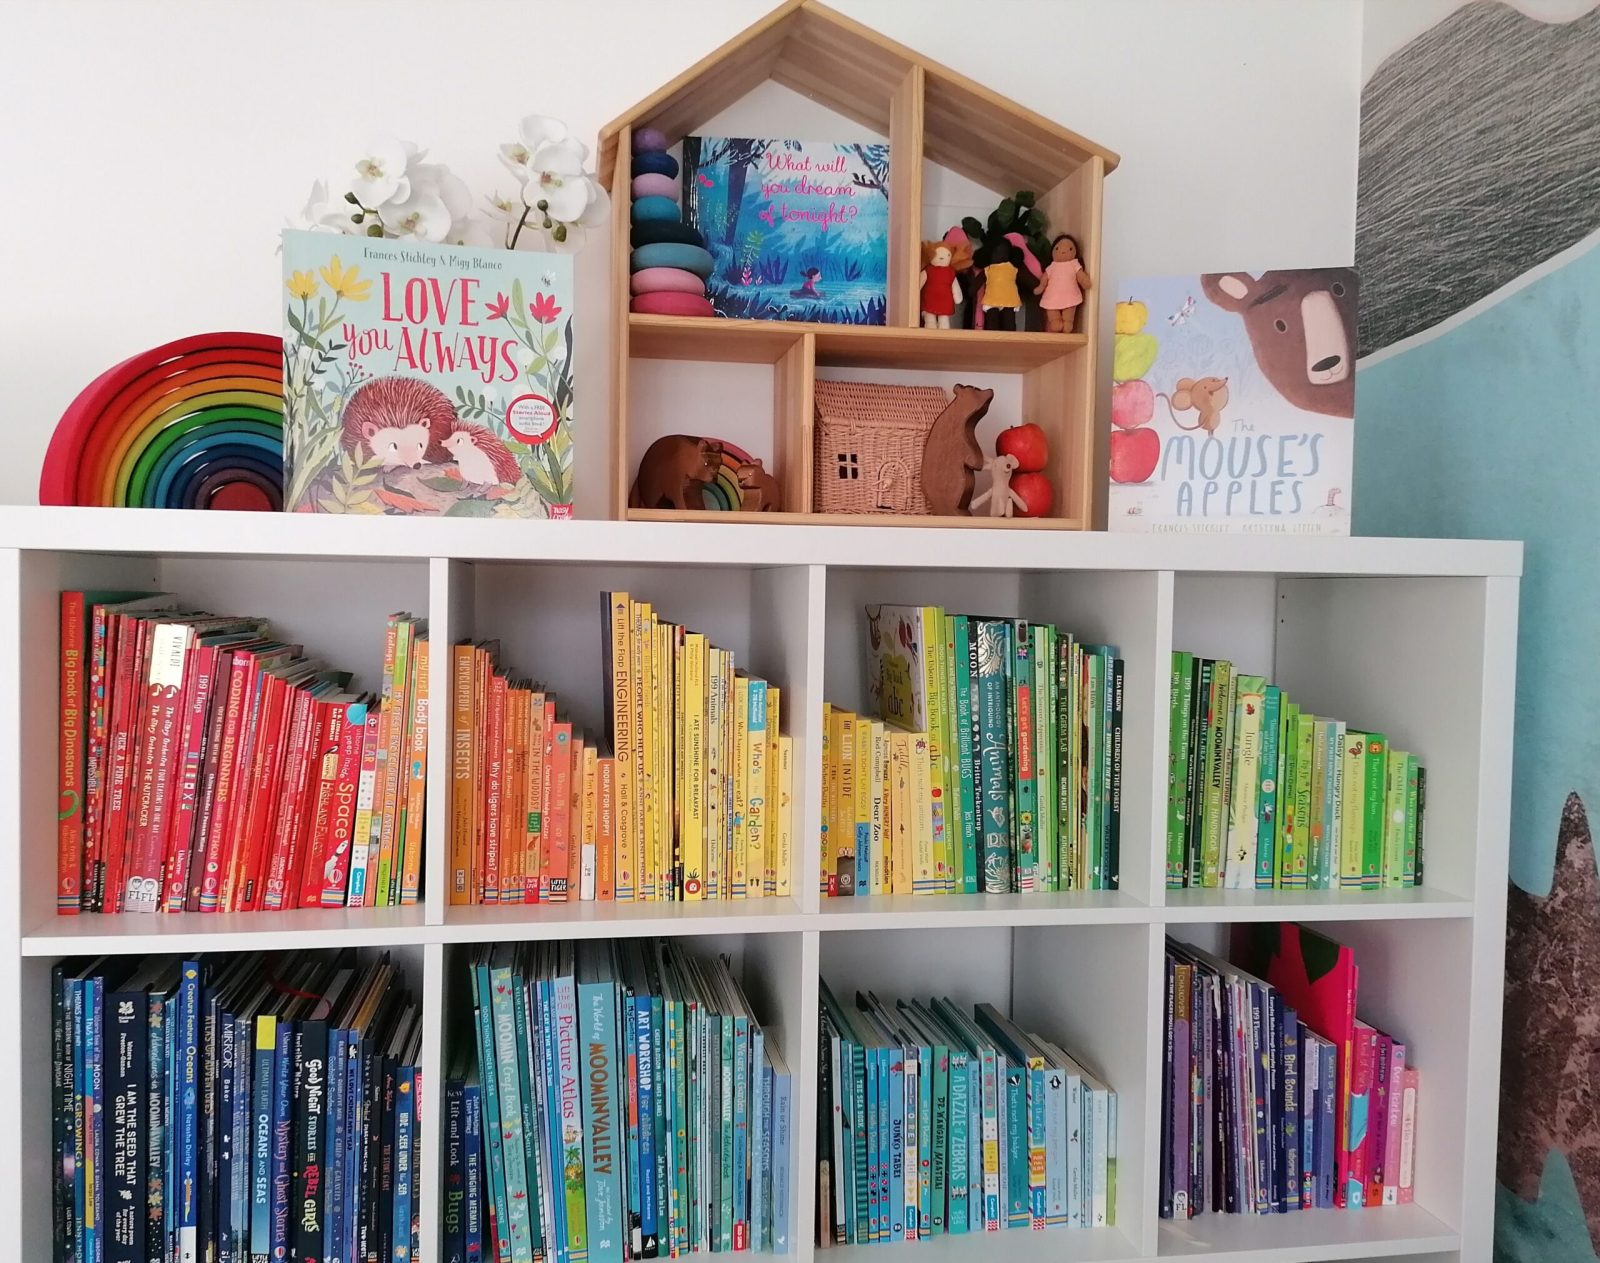 Book shelf with a rainbow of books and on the top shelf books by Frances Stickley including The Mouse's Apples by Frances Stickley and Kristyna Litten, what will you dream of tonight? and Love you always with story props to go with the stories